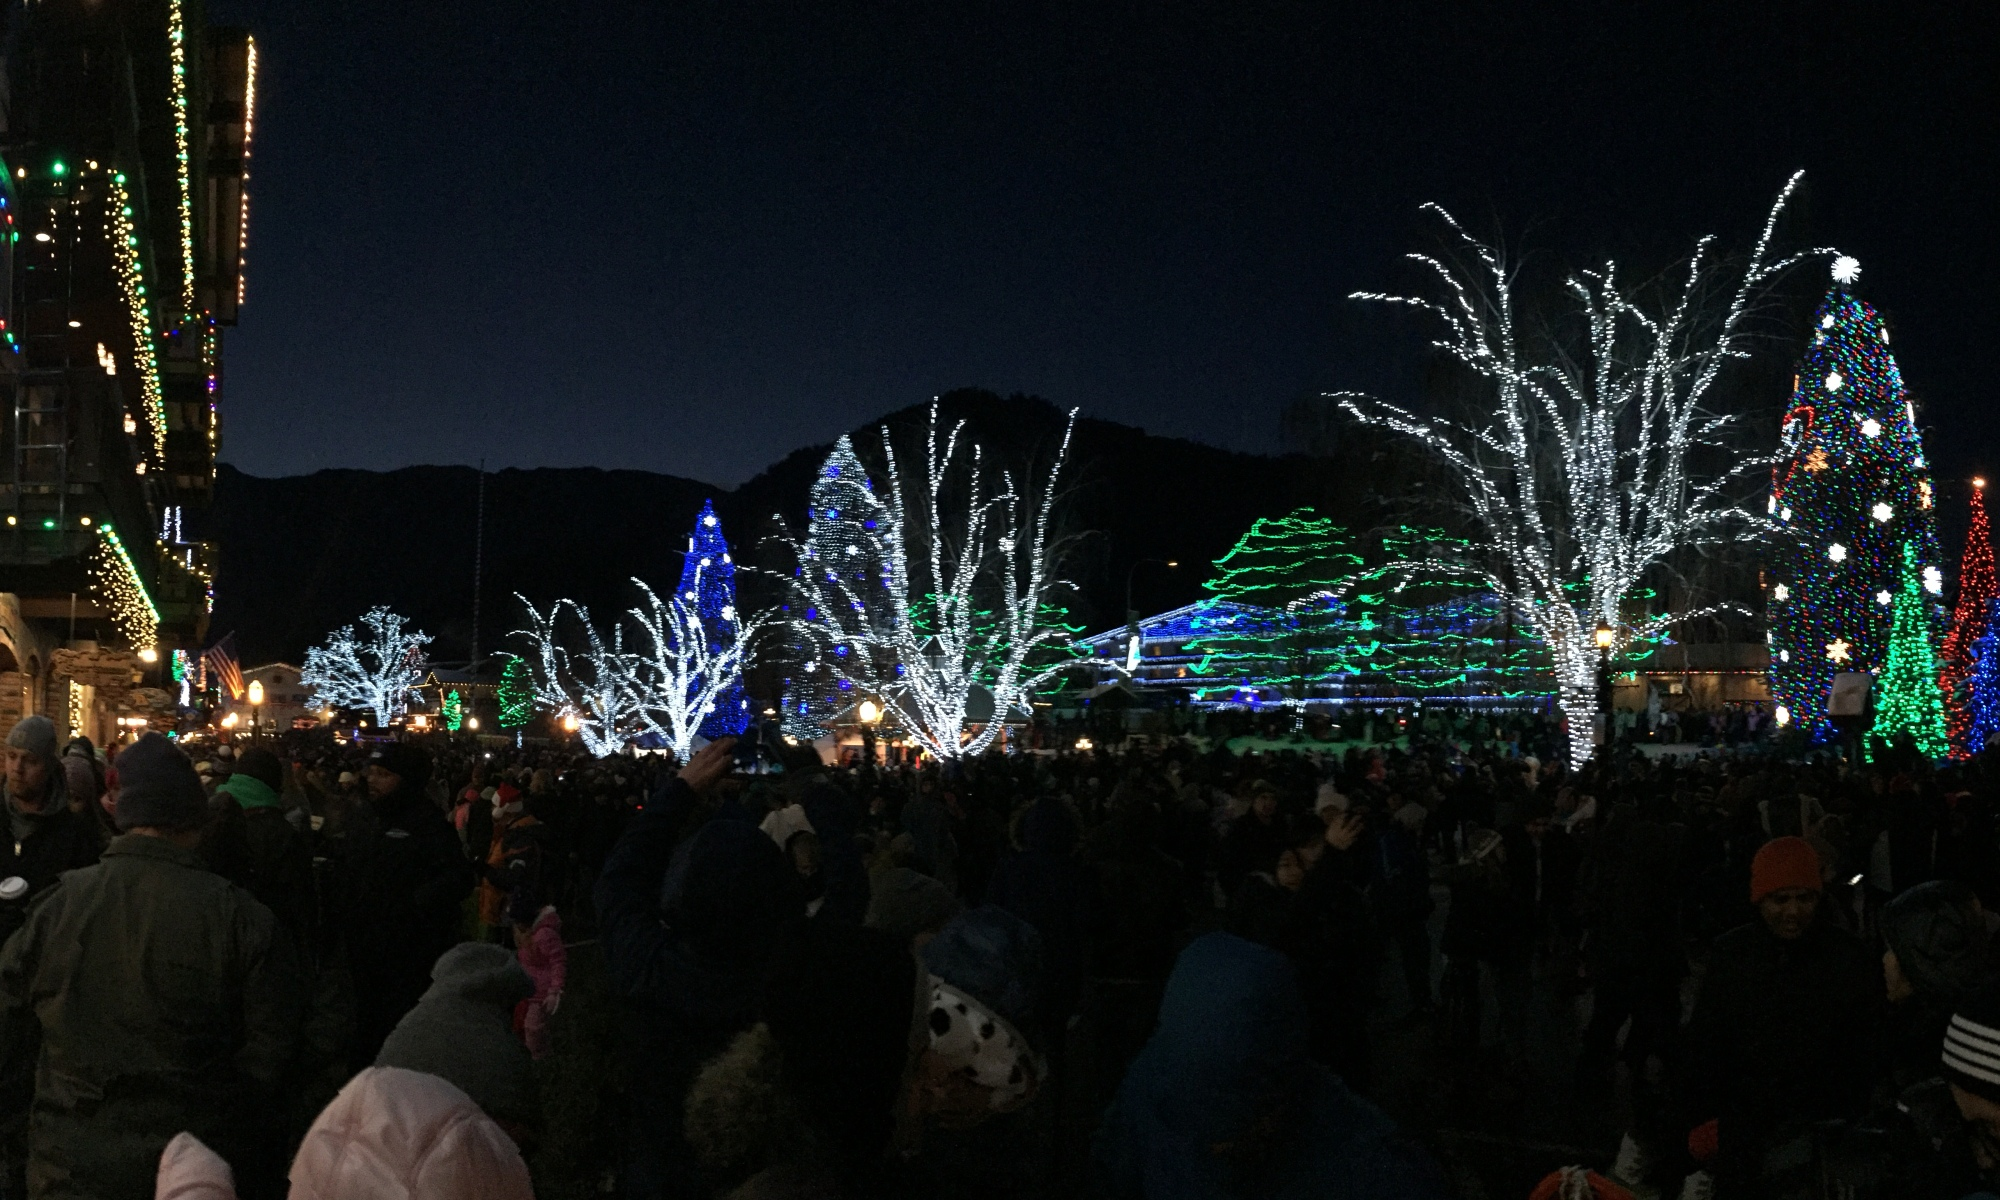 Leavenworth Christmas Lights.Leavenworth Wa Favorite Holiday Destination Day 5 Of My